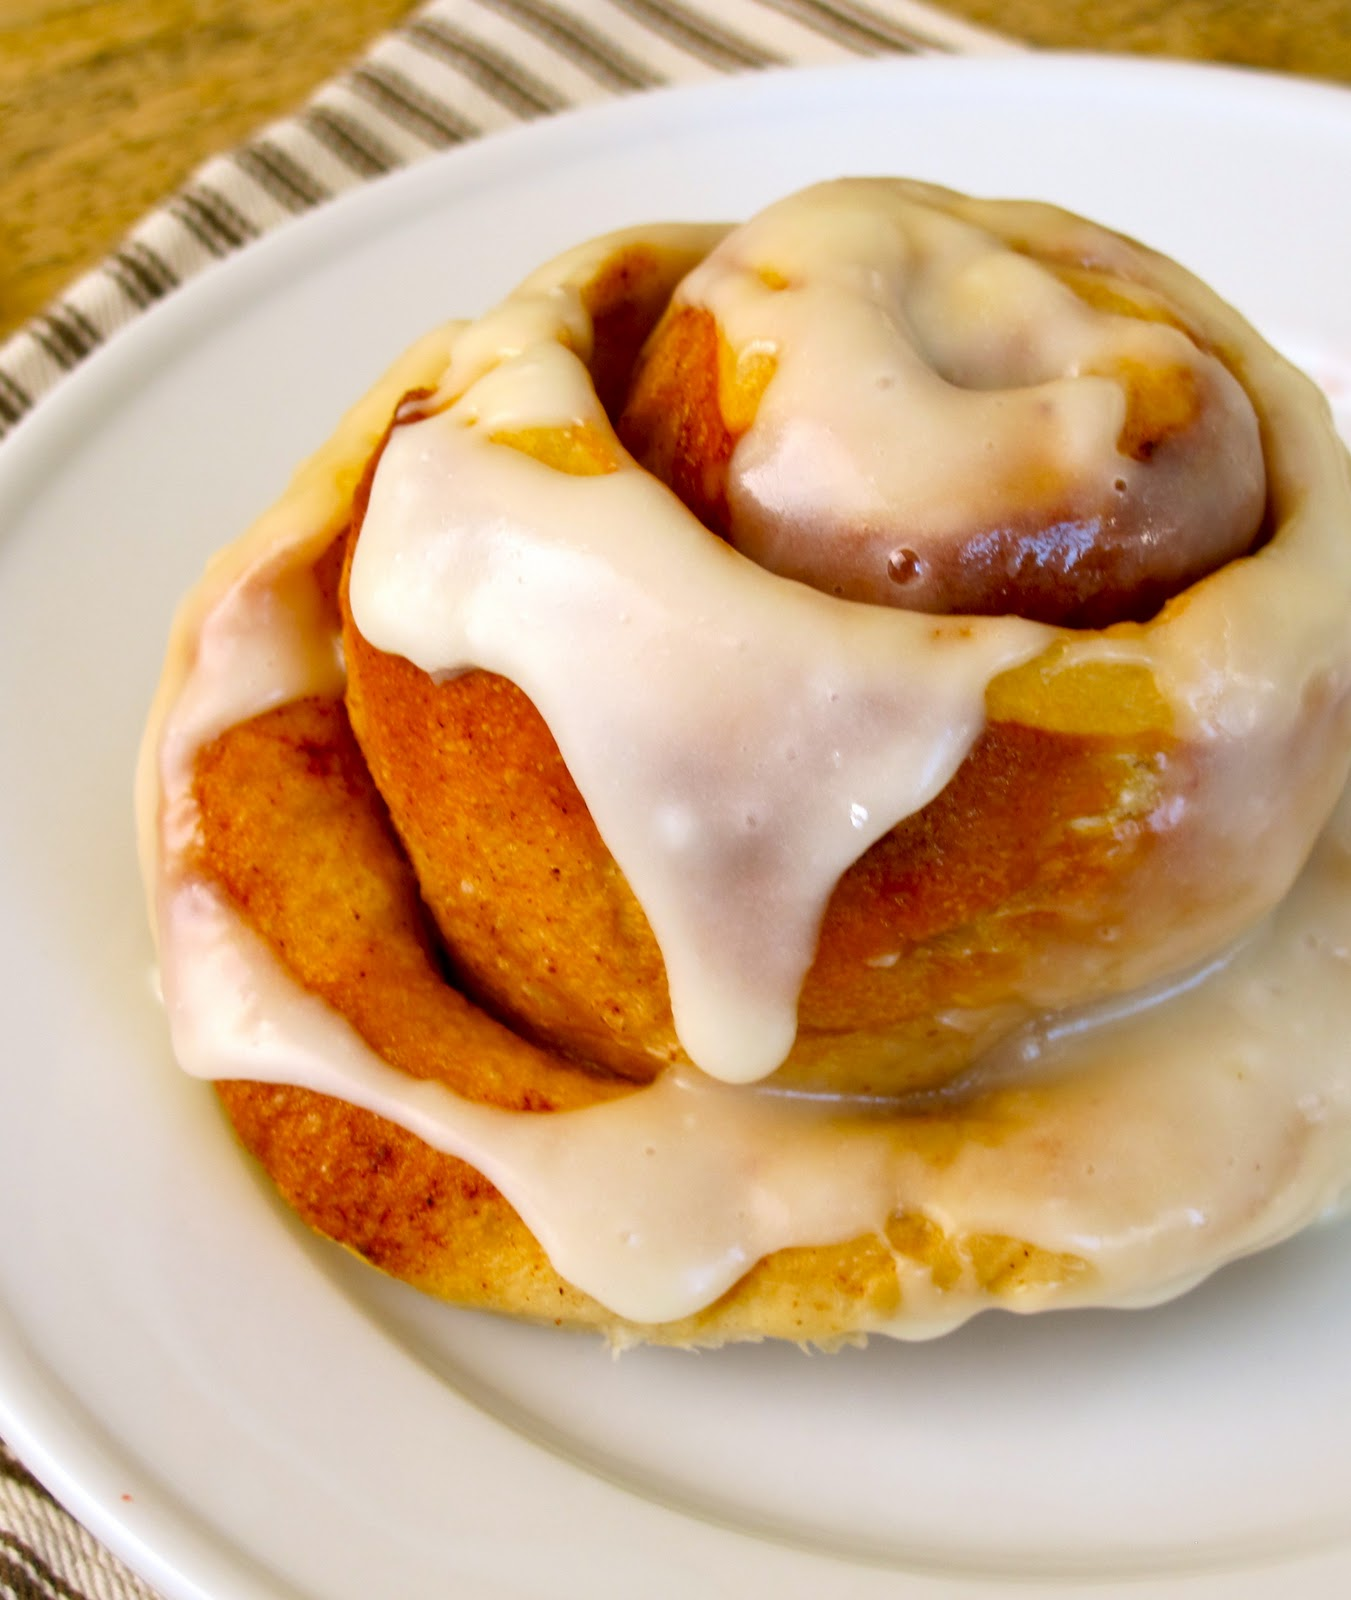 Jenny Steffens Hobick Recipes: Jenny Steffens Hobick: Cinnamon Rolls From Frozen Bread